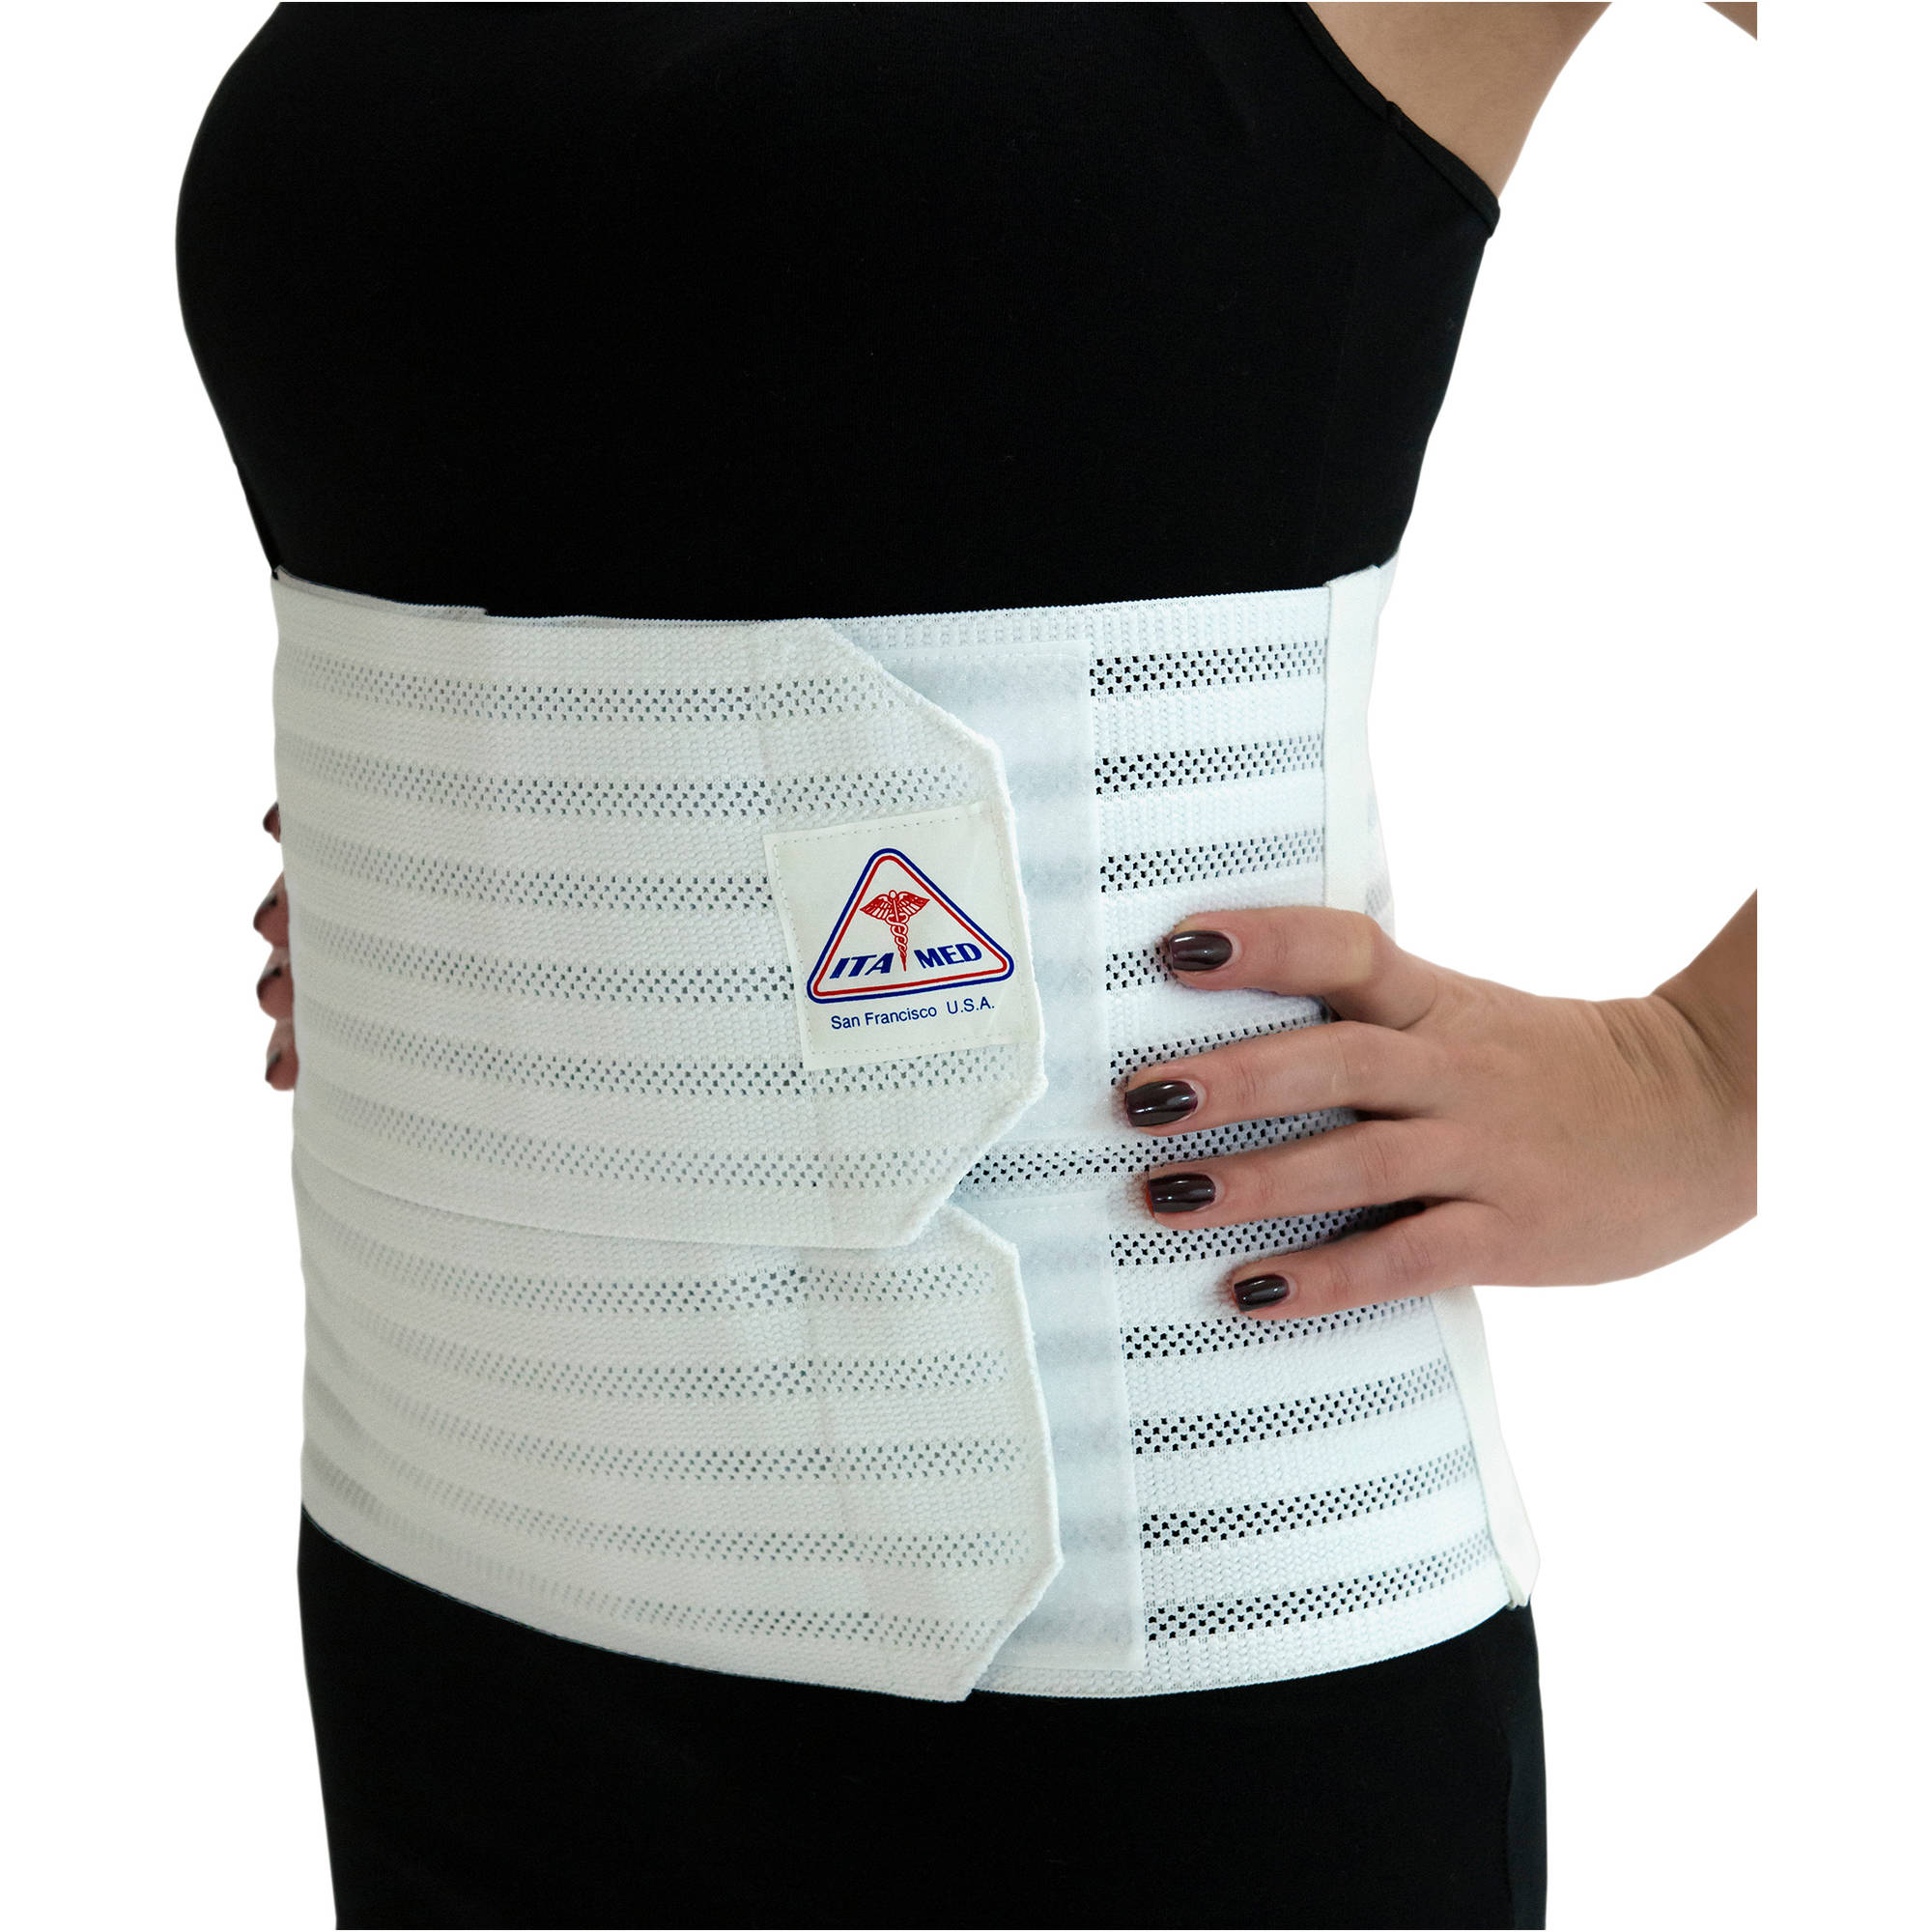 ITA-MED Medium Support Abdominal Binder for Women, AB-309(W)